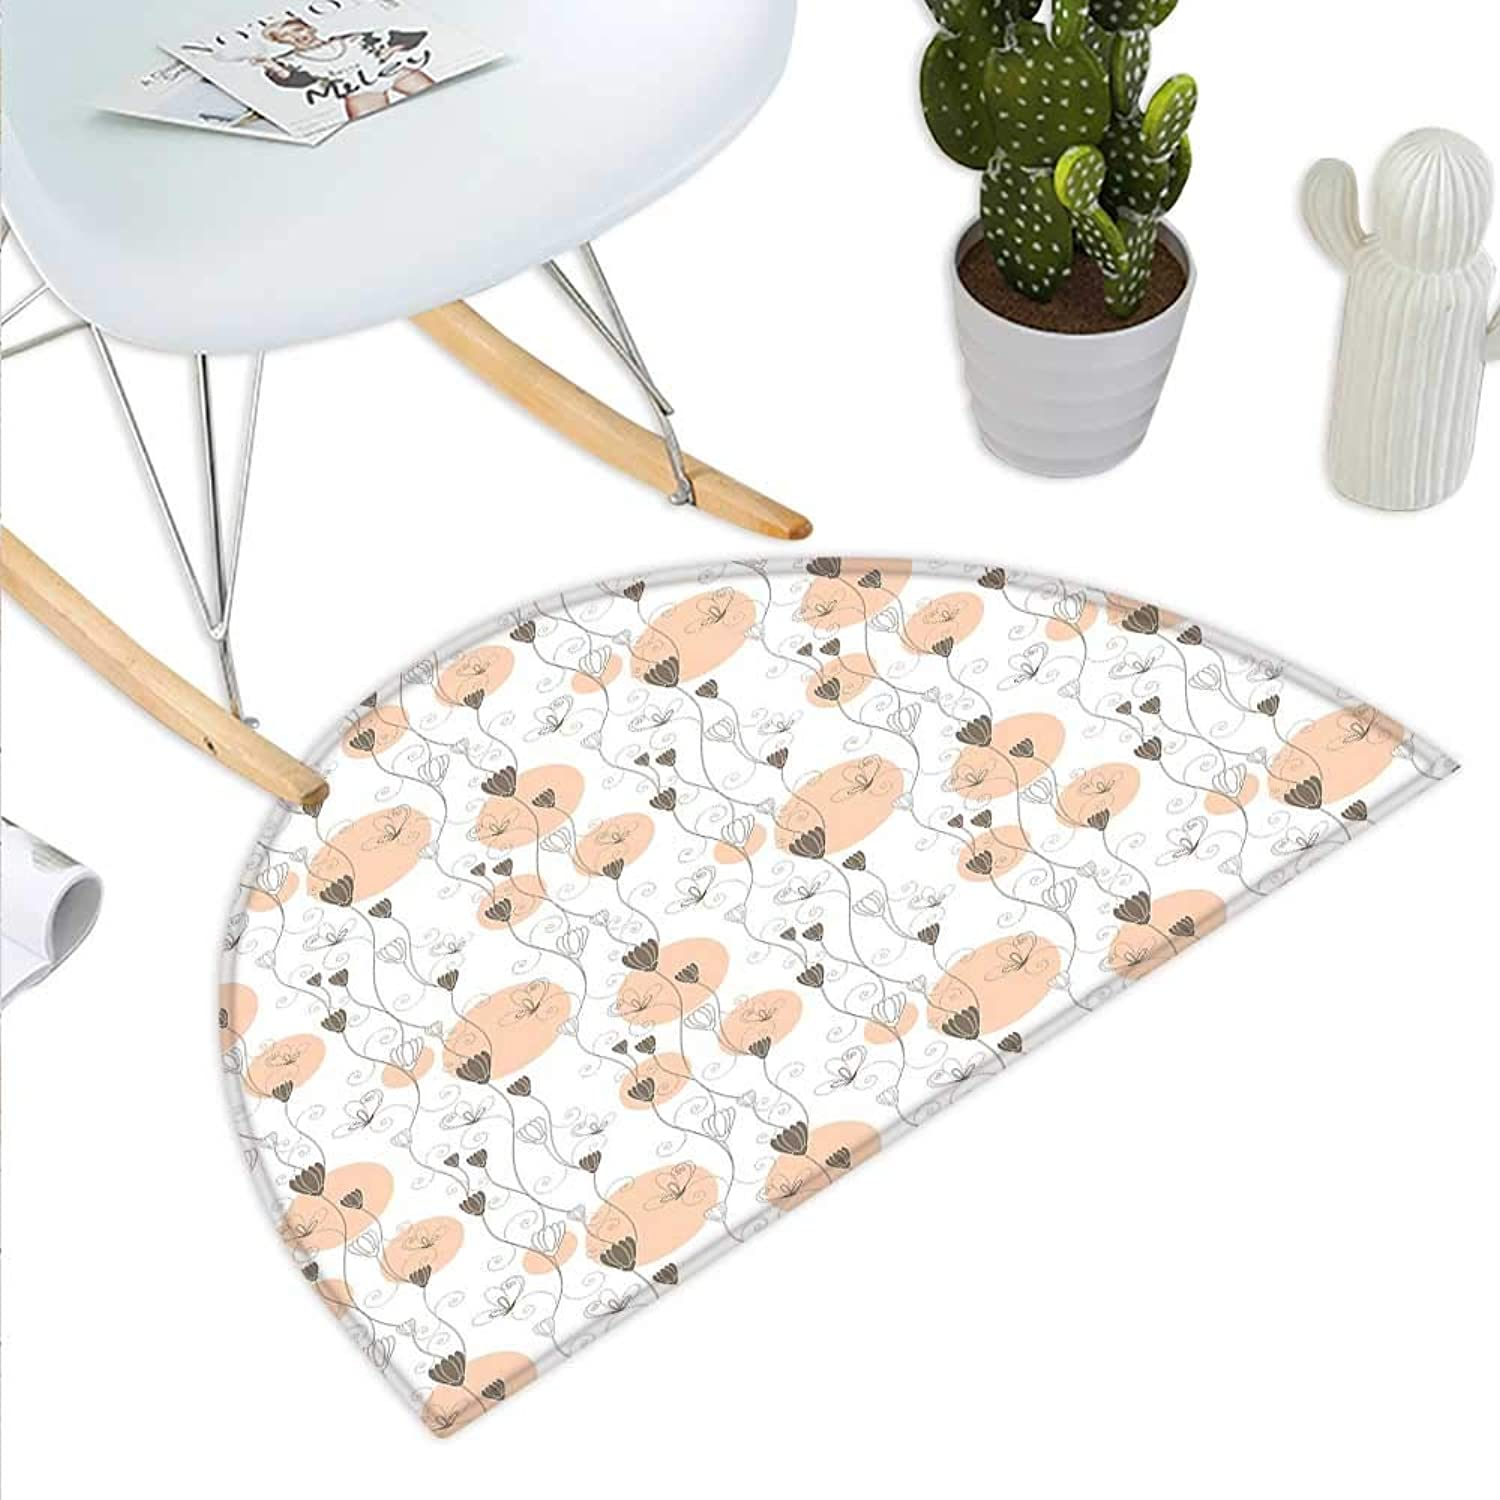 Floral Semicircle Doormat Abstract Flourishing Wildflowers with Petals and Stalks on Dotted Background Halfmoon doormats H 27.5  xD 41.3  Peach Umber White